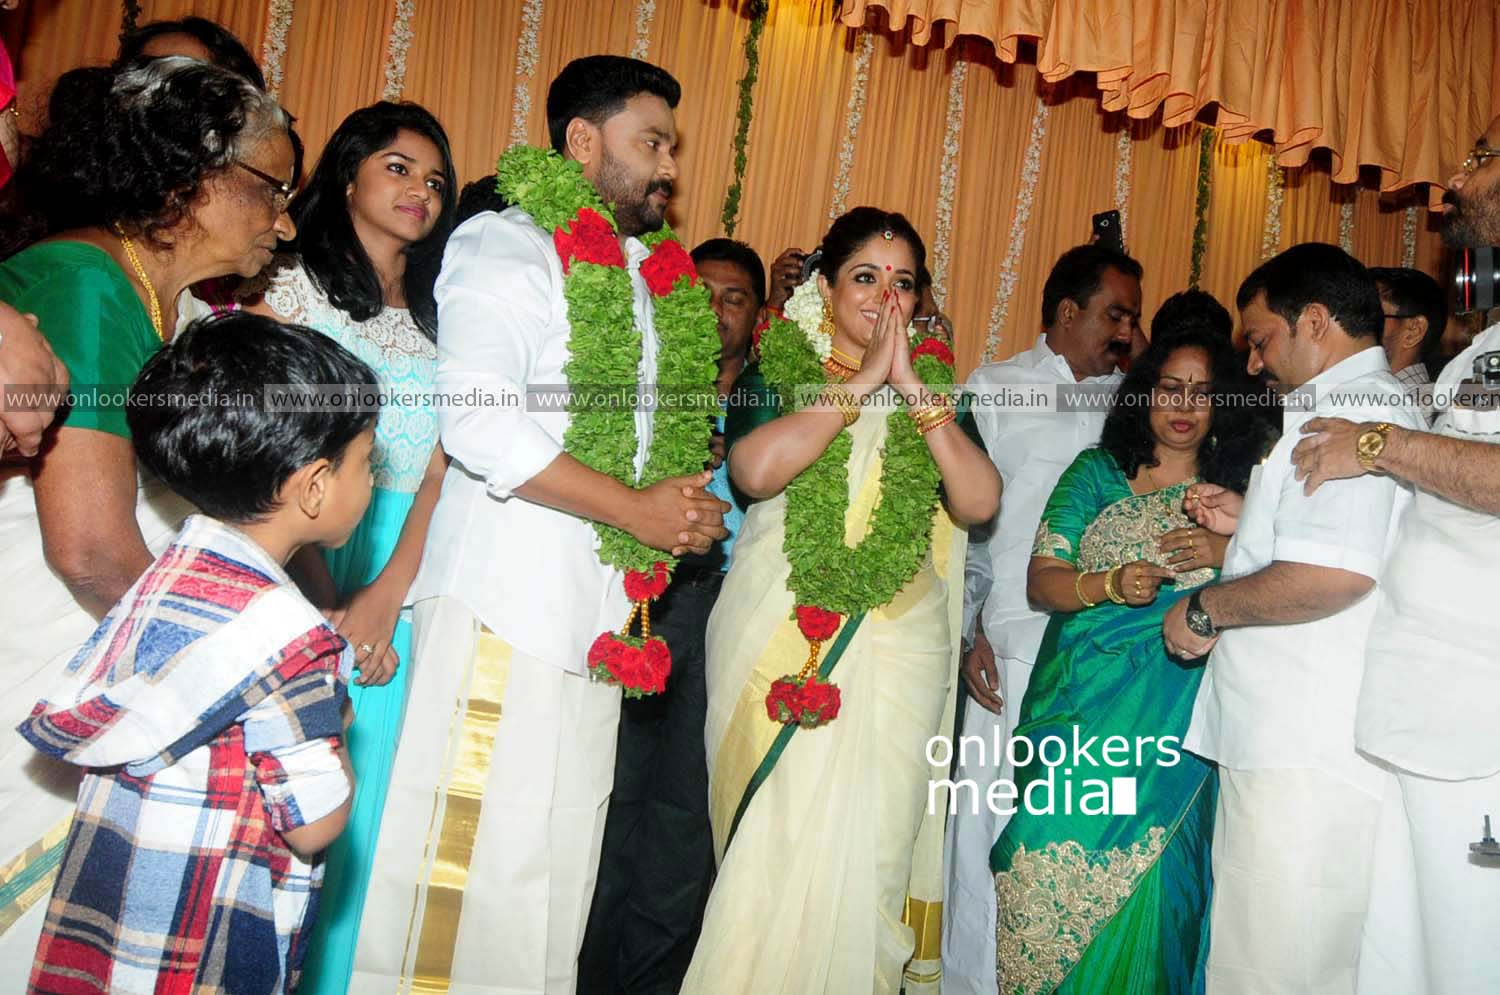 http://onlookersmedia.in/wp-content/uploads/2016/11/Dileep-Kavya-Madhavan-Wedding-Stills-Photos-18.jpg